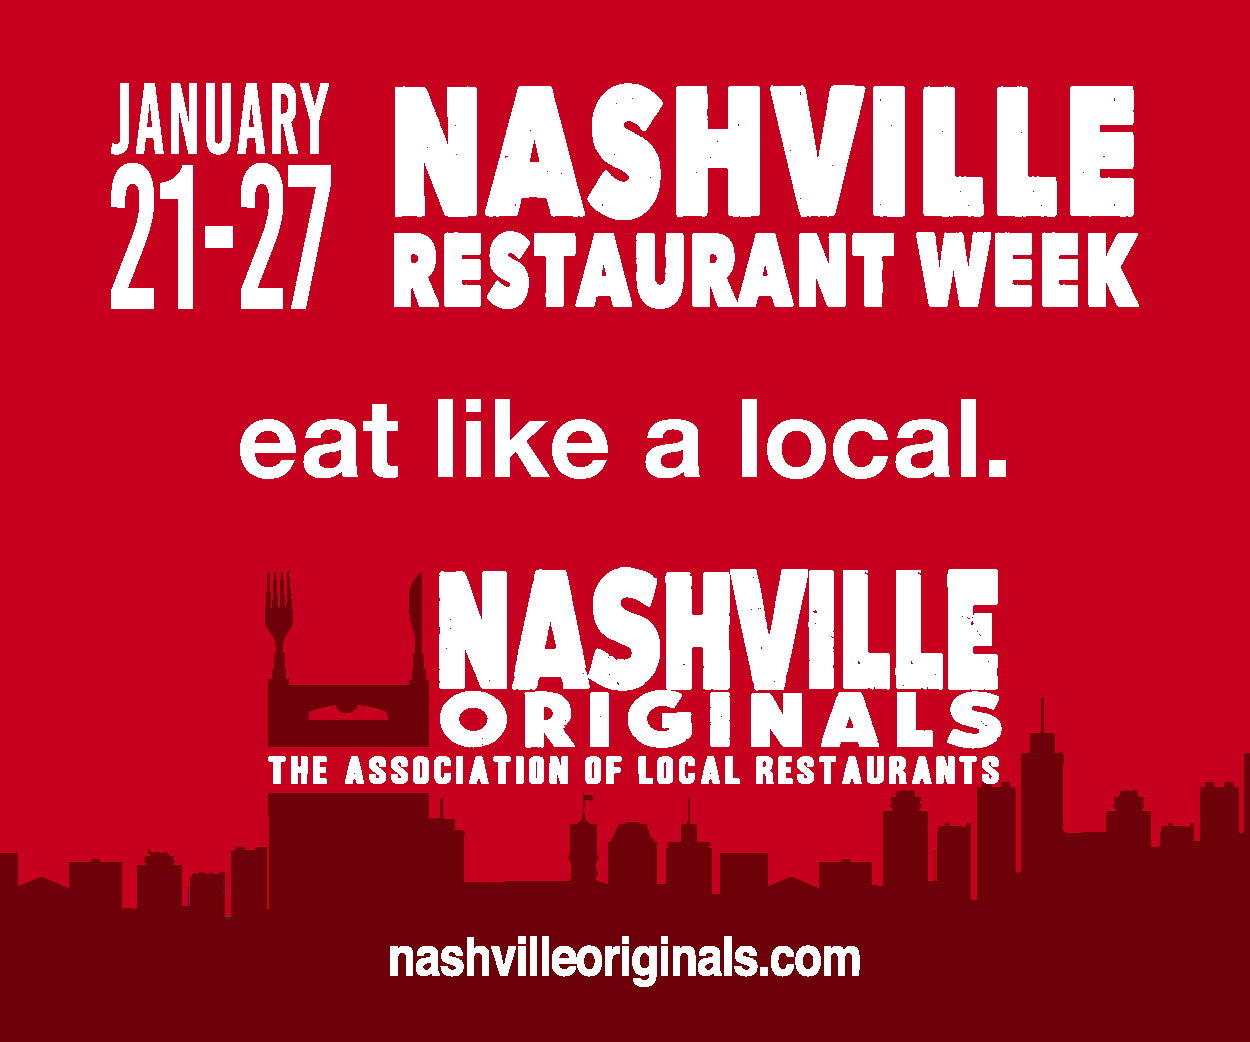 Celebrate Nashville Restaurant Week Jan. 21 - 27!